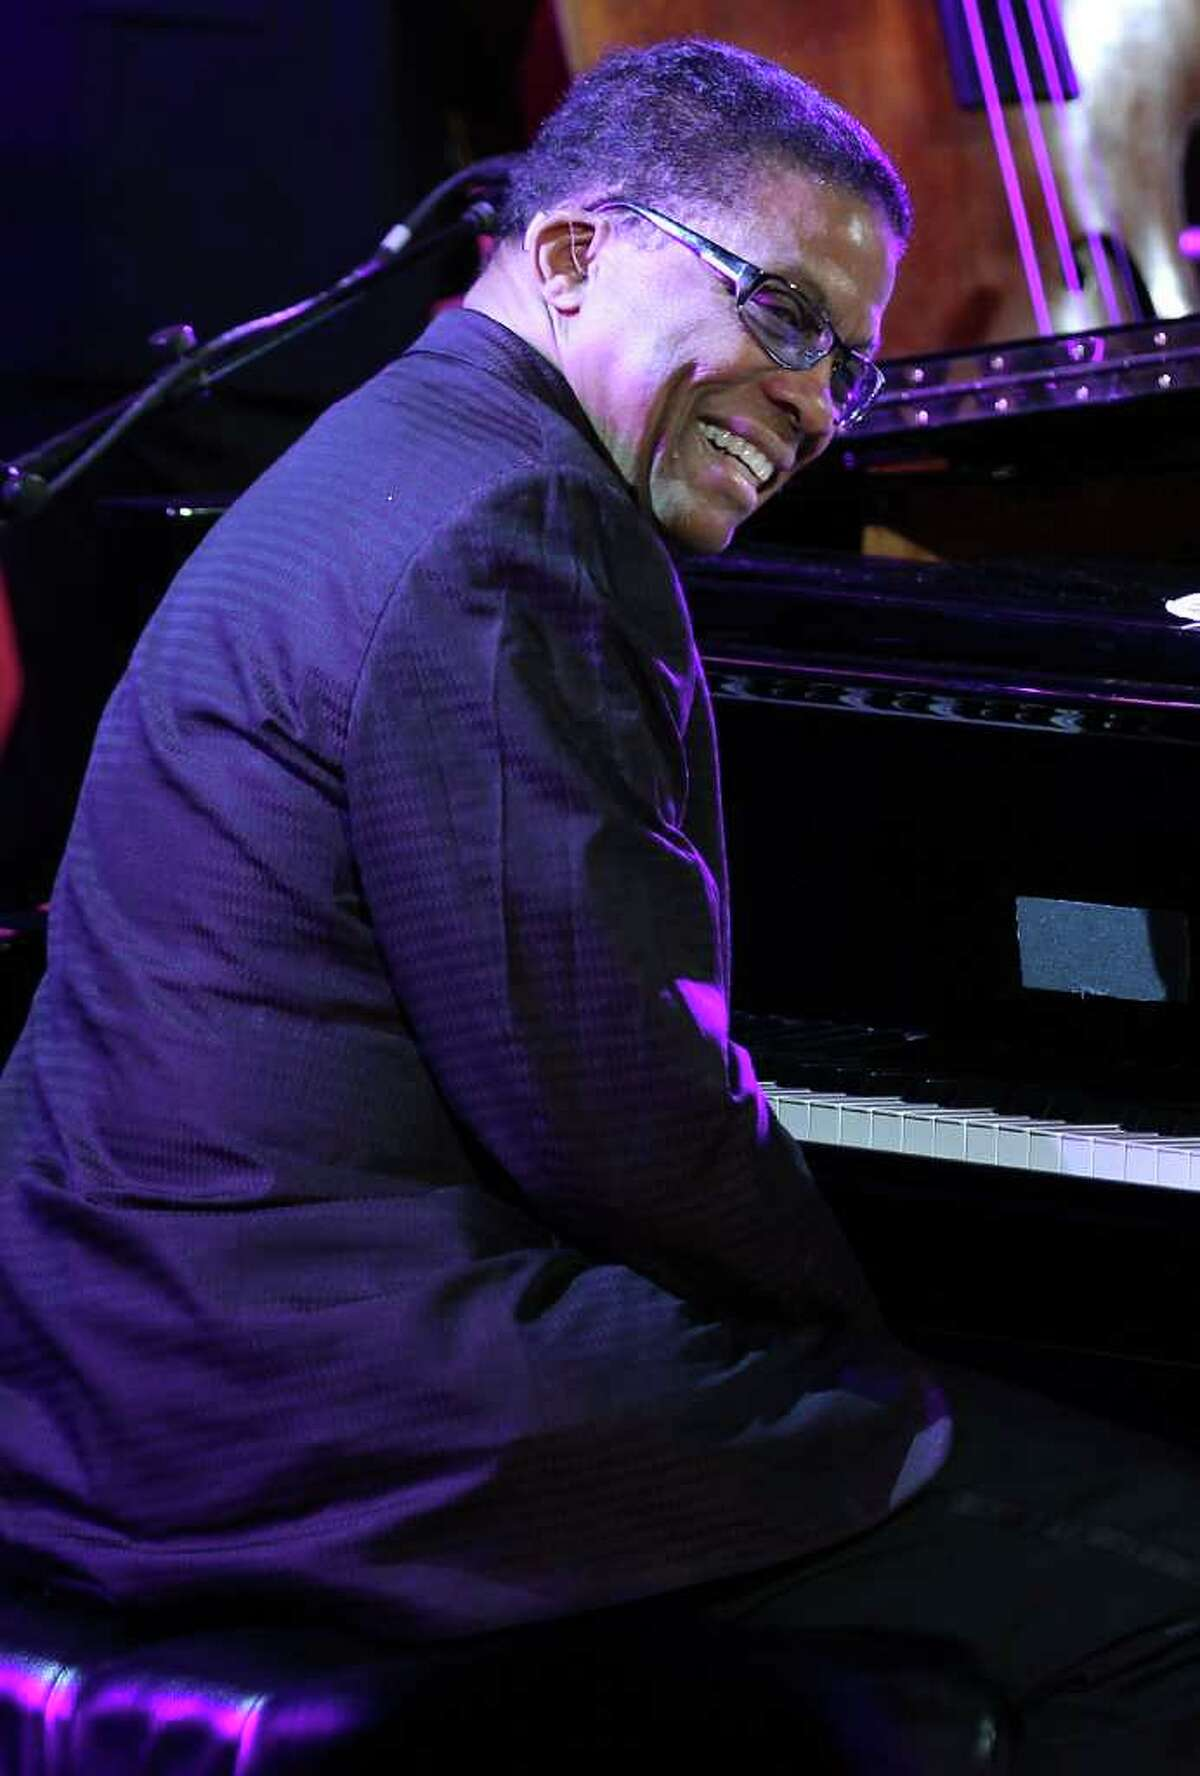 WASHINGTON, DC - JANUARY 19: Musician Herbie Hancock performs during a state dinner reception hosted by U.S. President Barack Obama for Chinese President Hu Jintao at the East Room of the White House January 19, 2011 in Washington, DC. Obama hosted a state dinner for Hu's state visit to the United States this evening. (Photo by Alex Wong/Getty Images) *** Local Caption *** Herbie Hancock